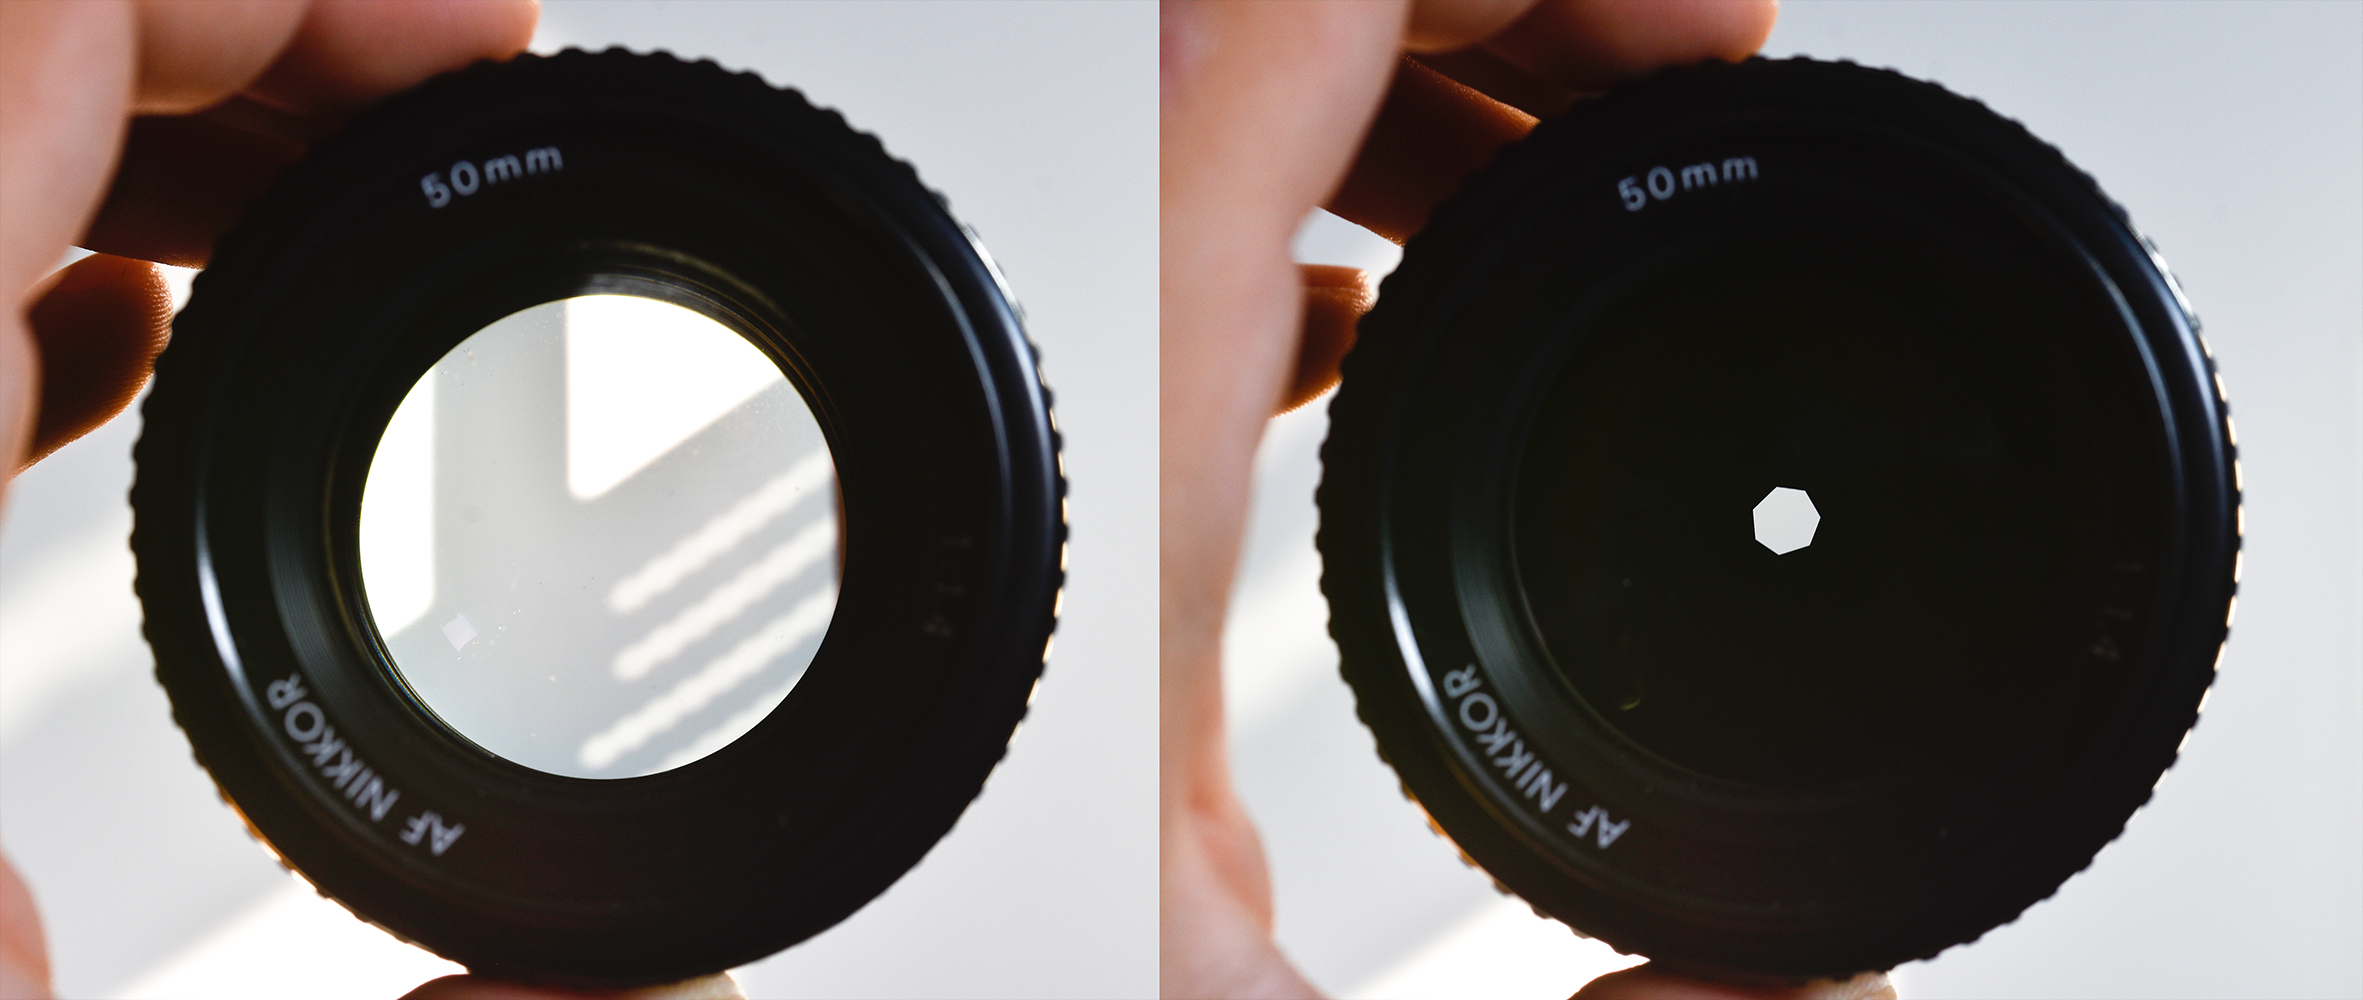 On the left site a large Aperture with a value of f/1.4 is shown. On the right site a small Aperture with a value of f/16 is presented.